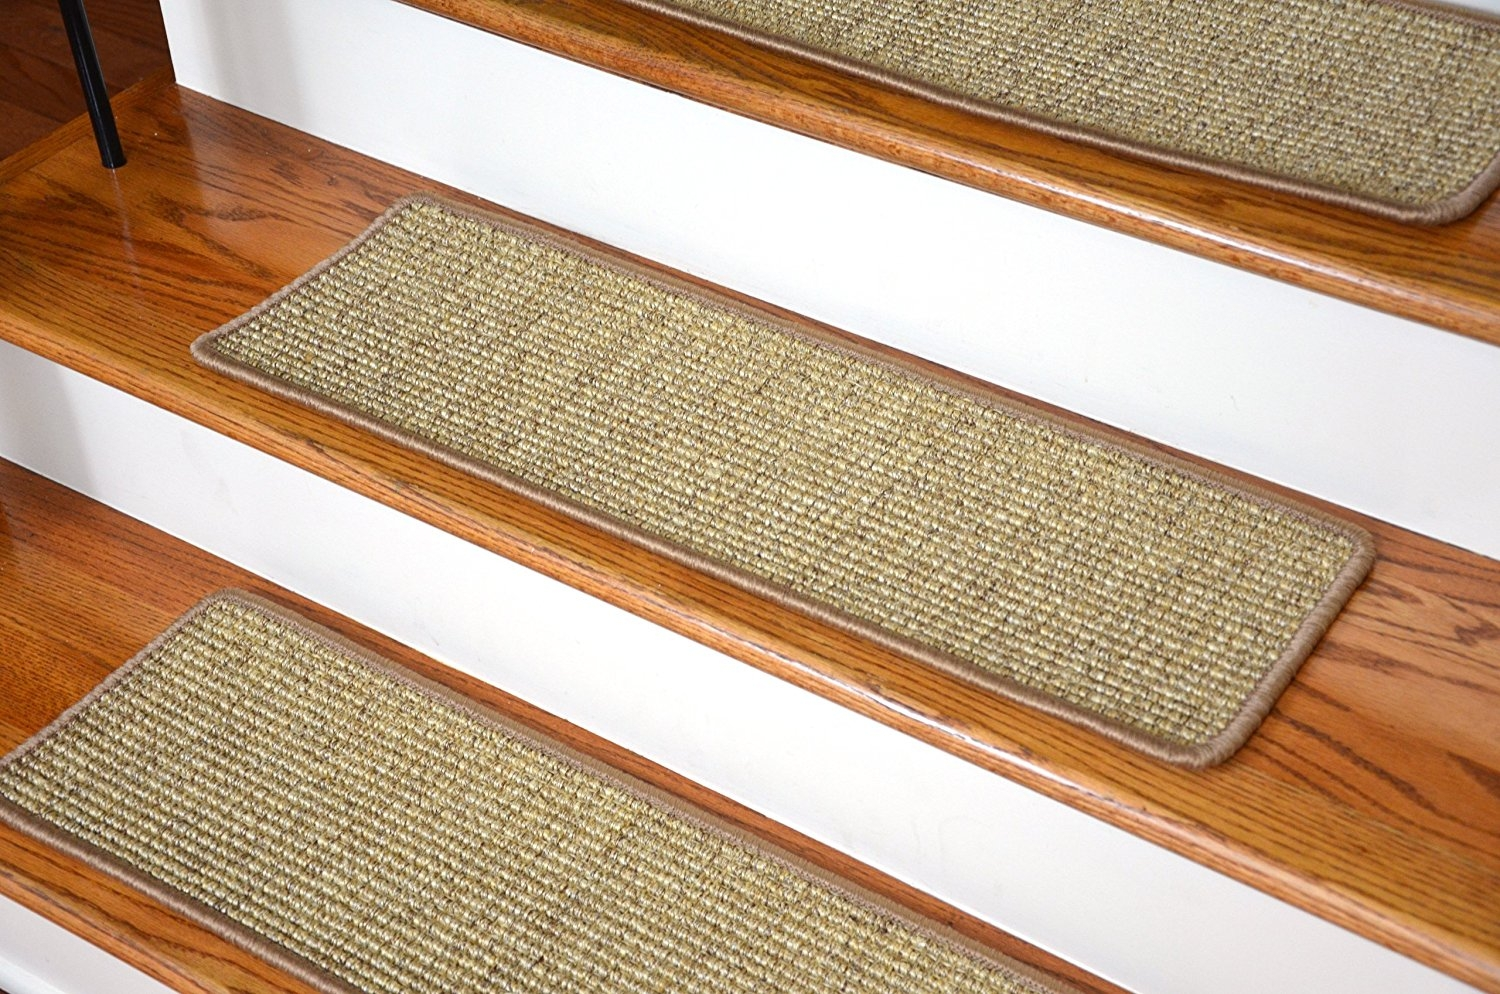 Amazon Dean Attachable Non Skid Sisal Carpet Stair Treads Regarding Non Slip Carpet For Stairs (Image 2 of 15)